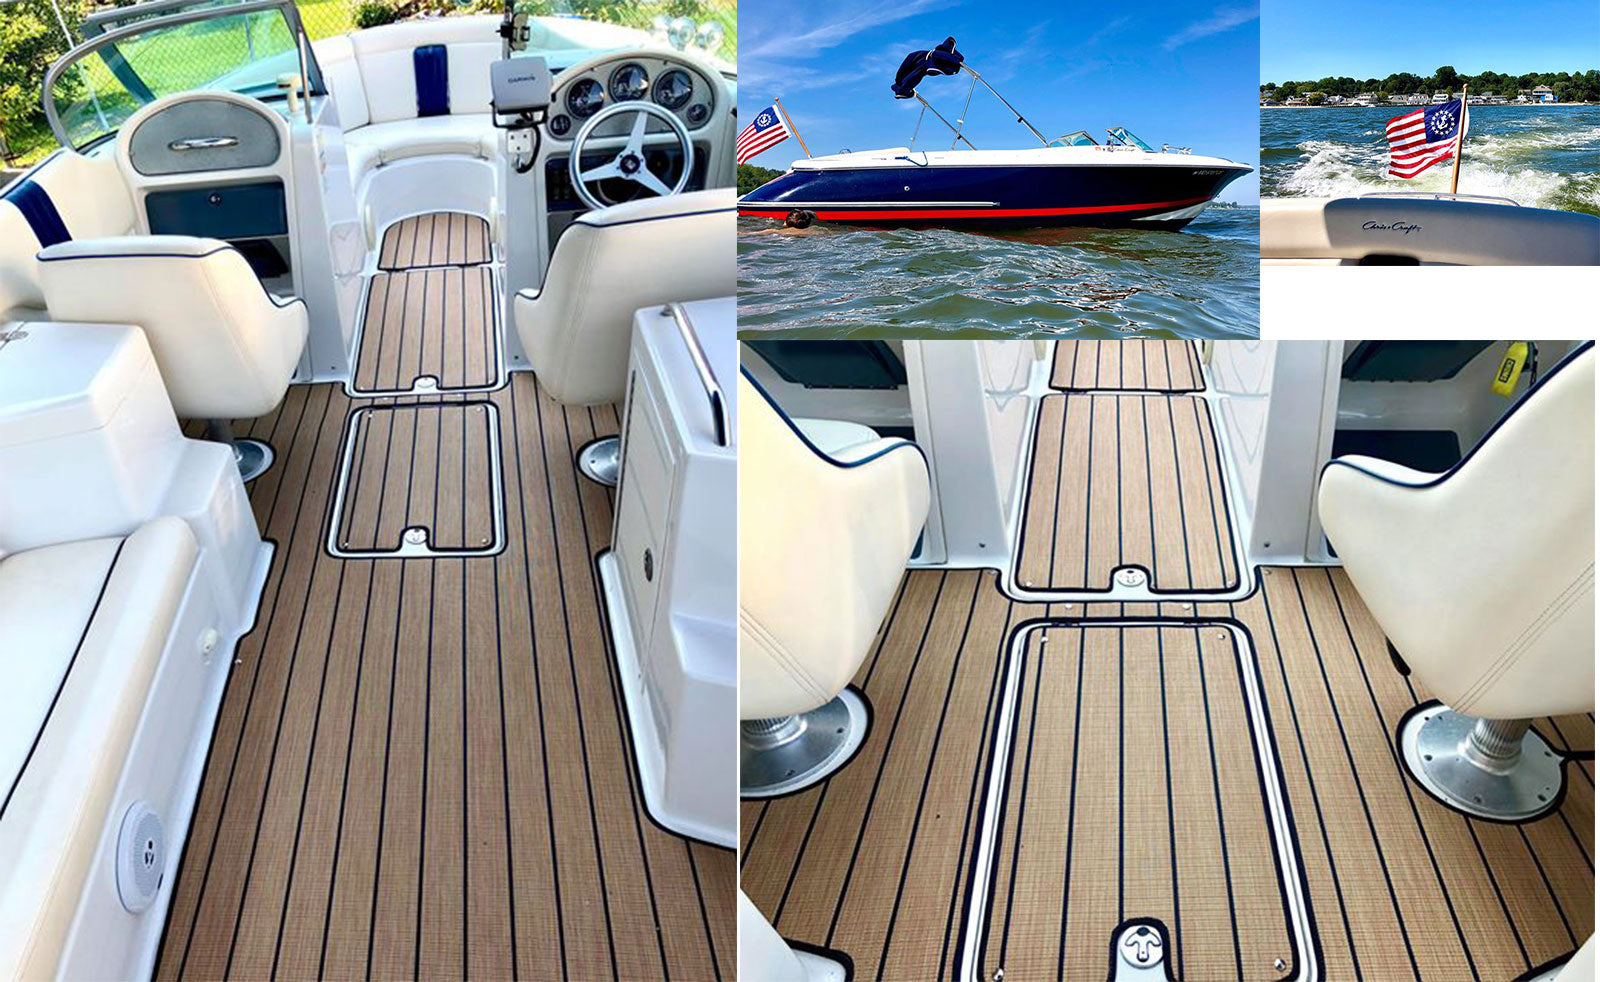 Matworks is expanding our marine luxury vinyl flooring choices